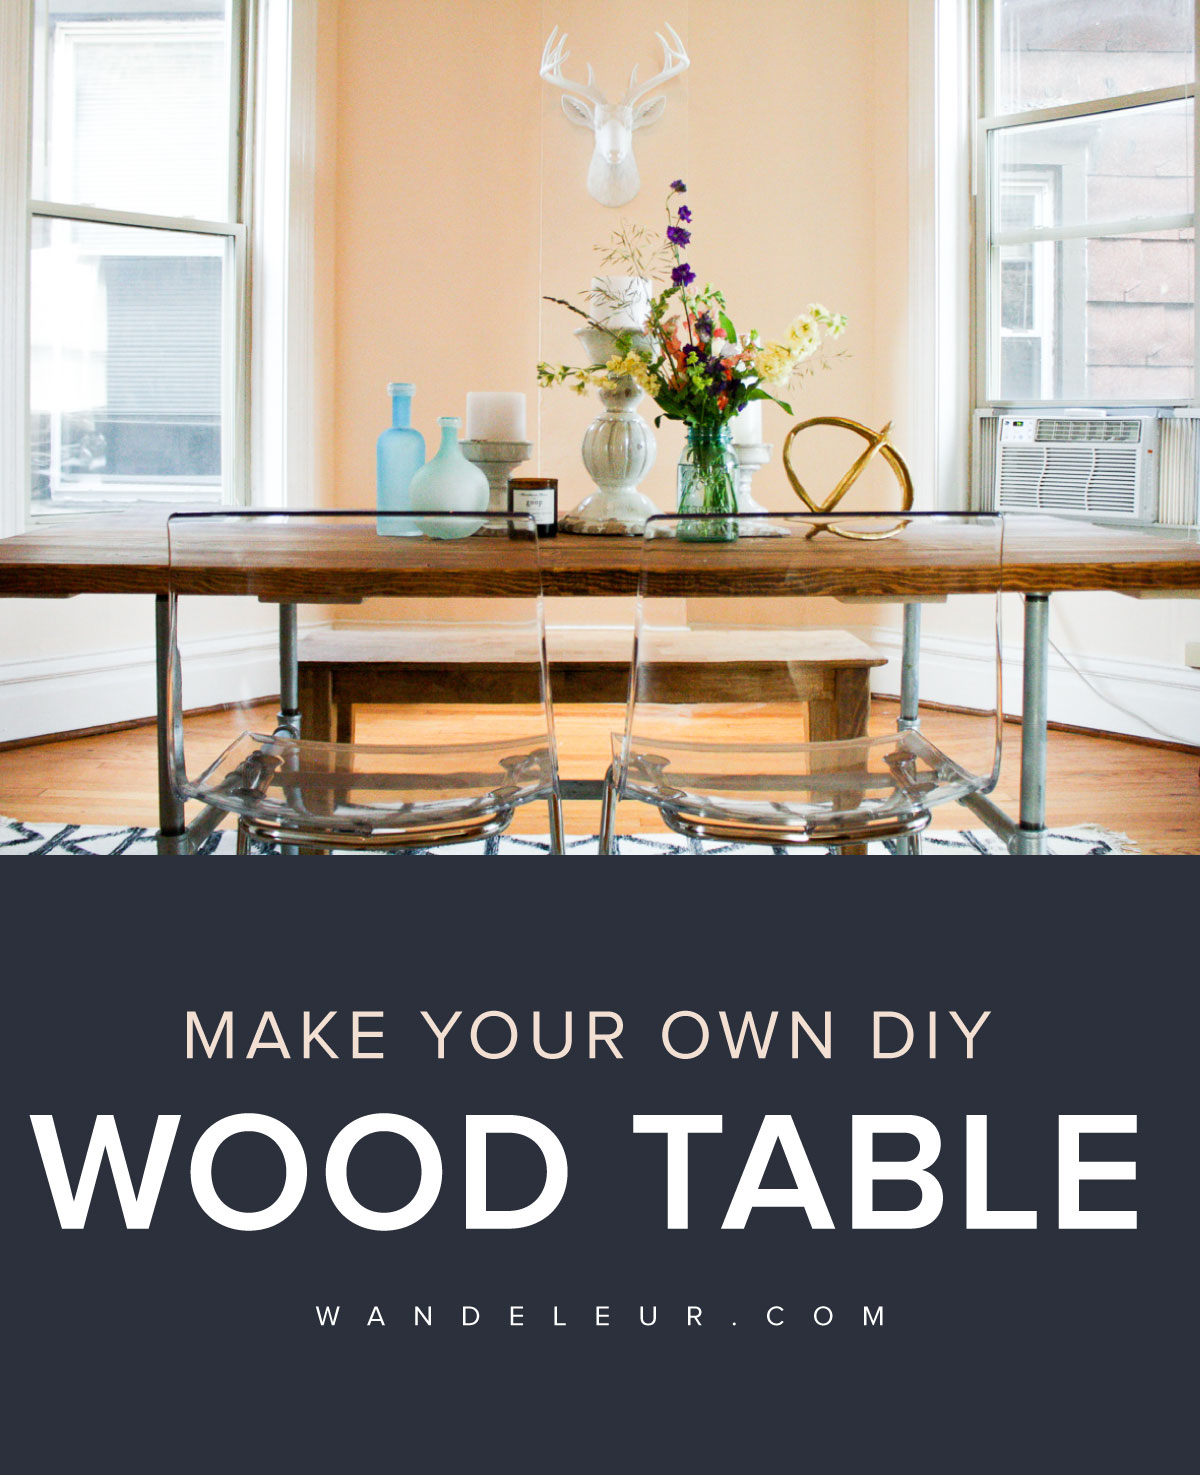 DIY-wood-table_how-to-make-your-own-table_wood-table-tutorial